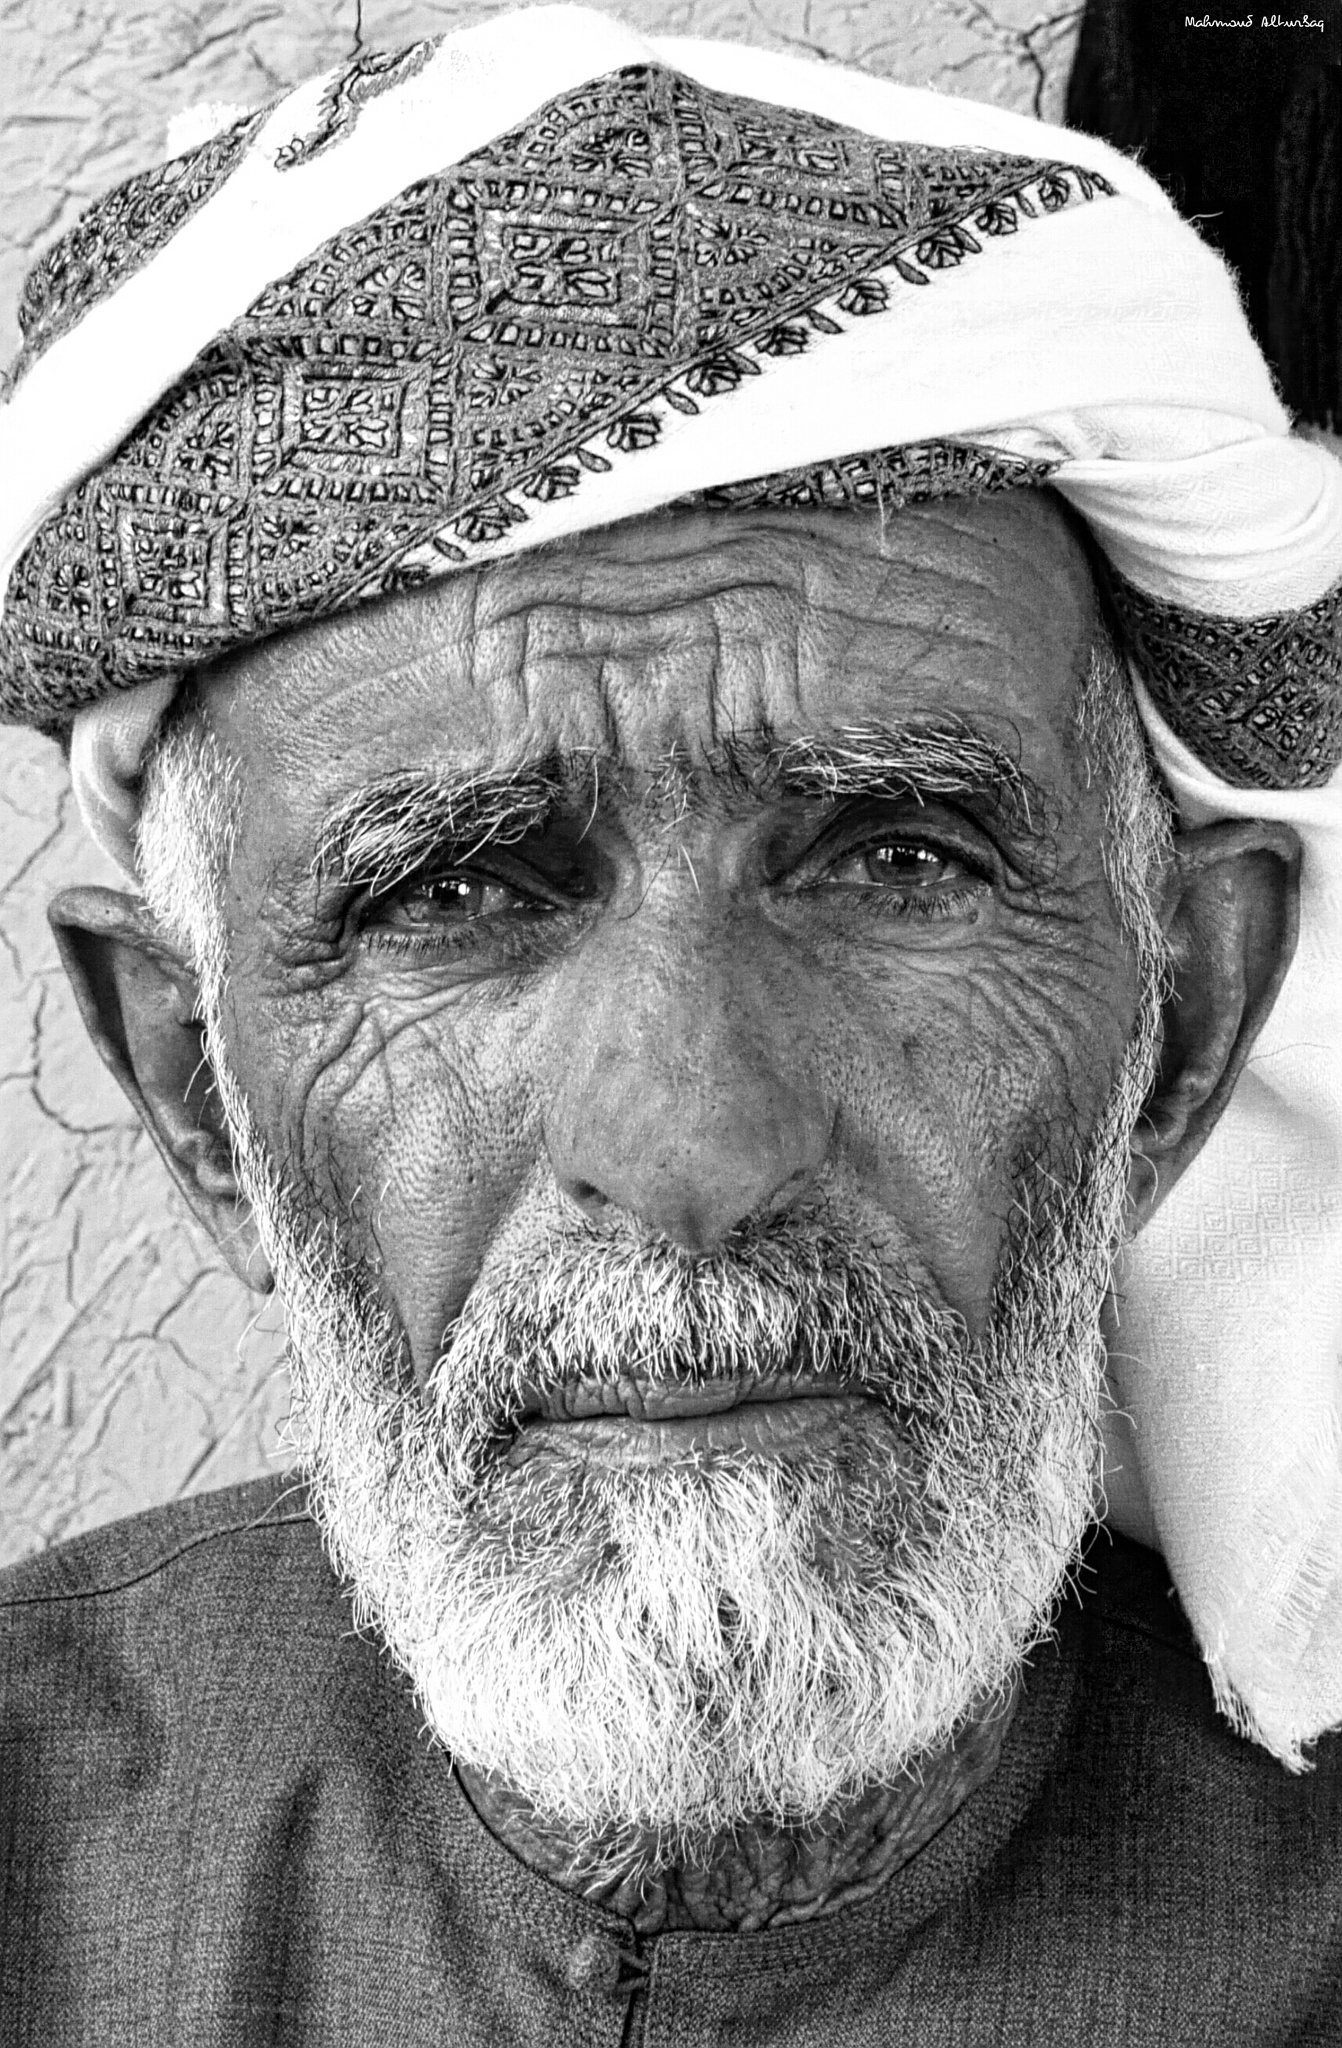 The old man's gaze by Mahmoud Alturbaq